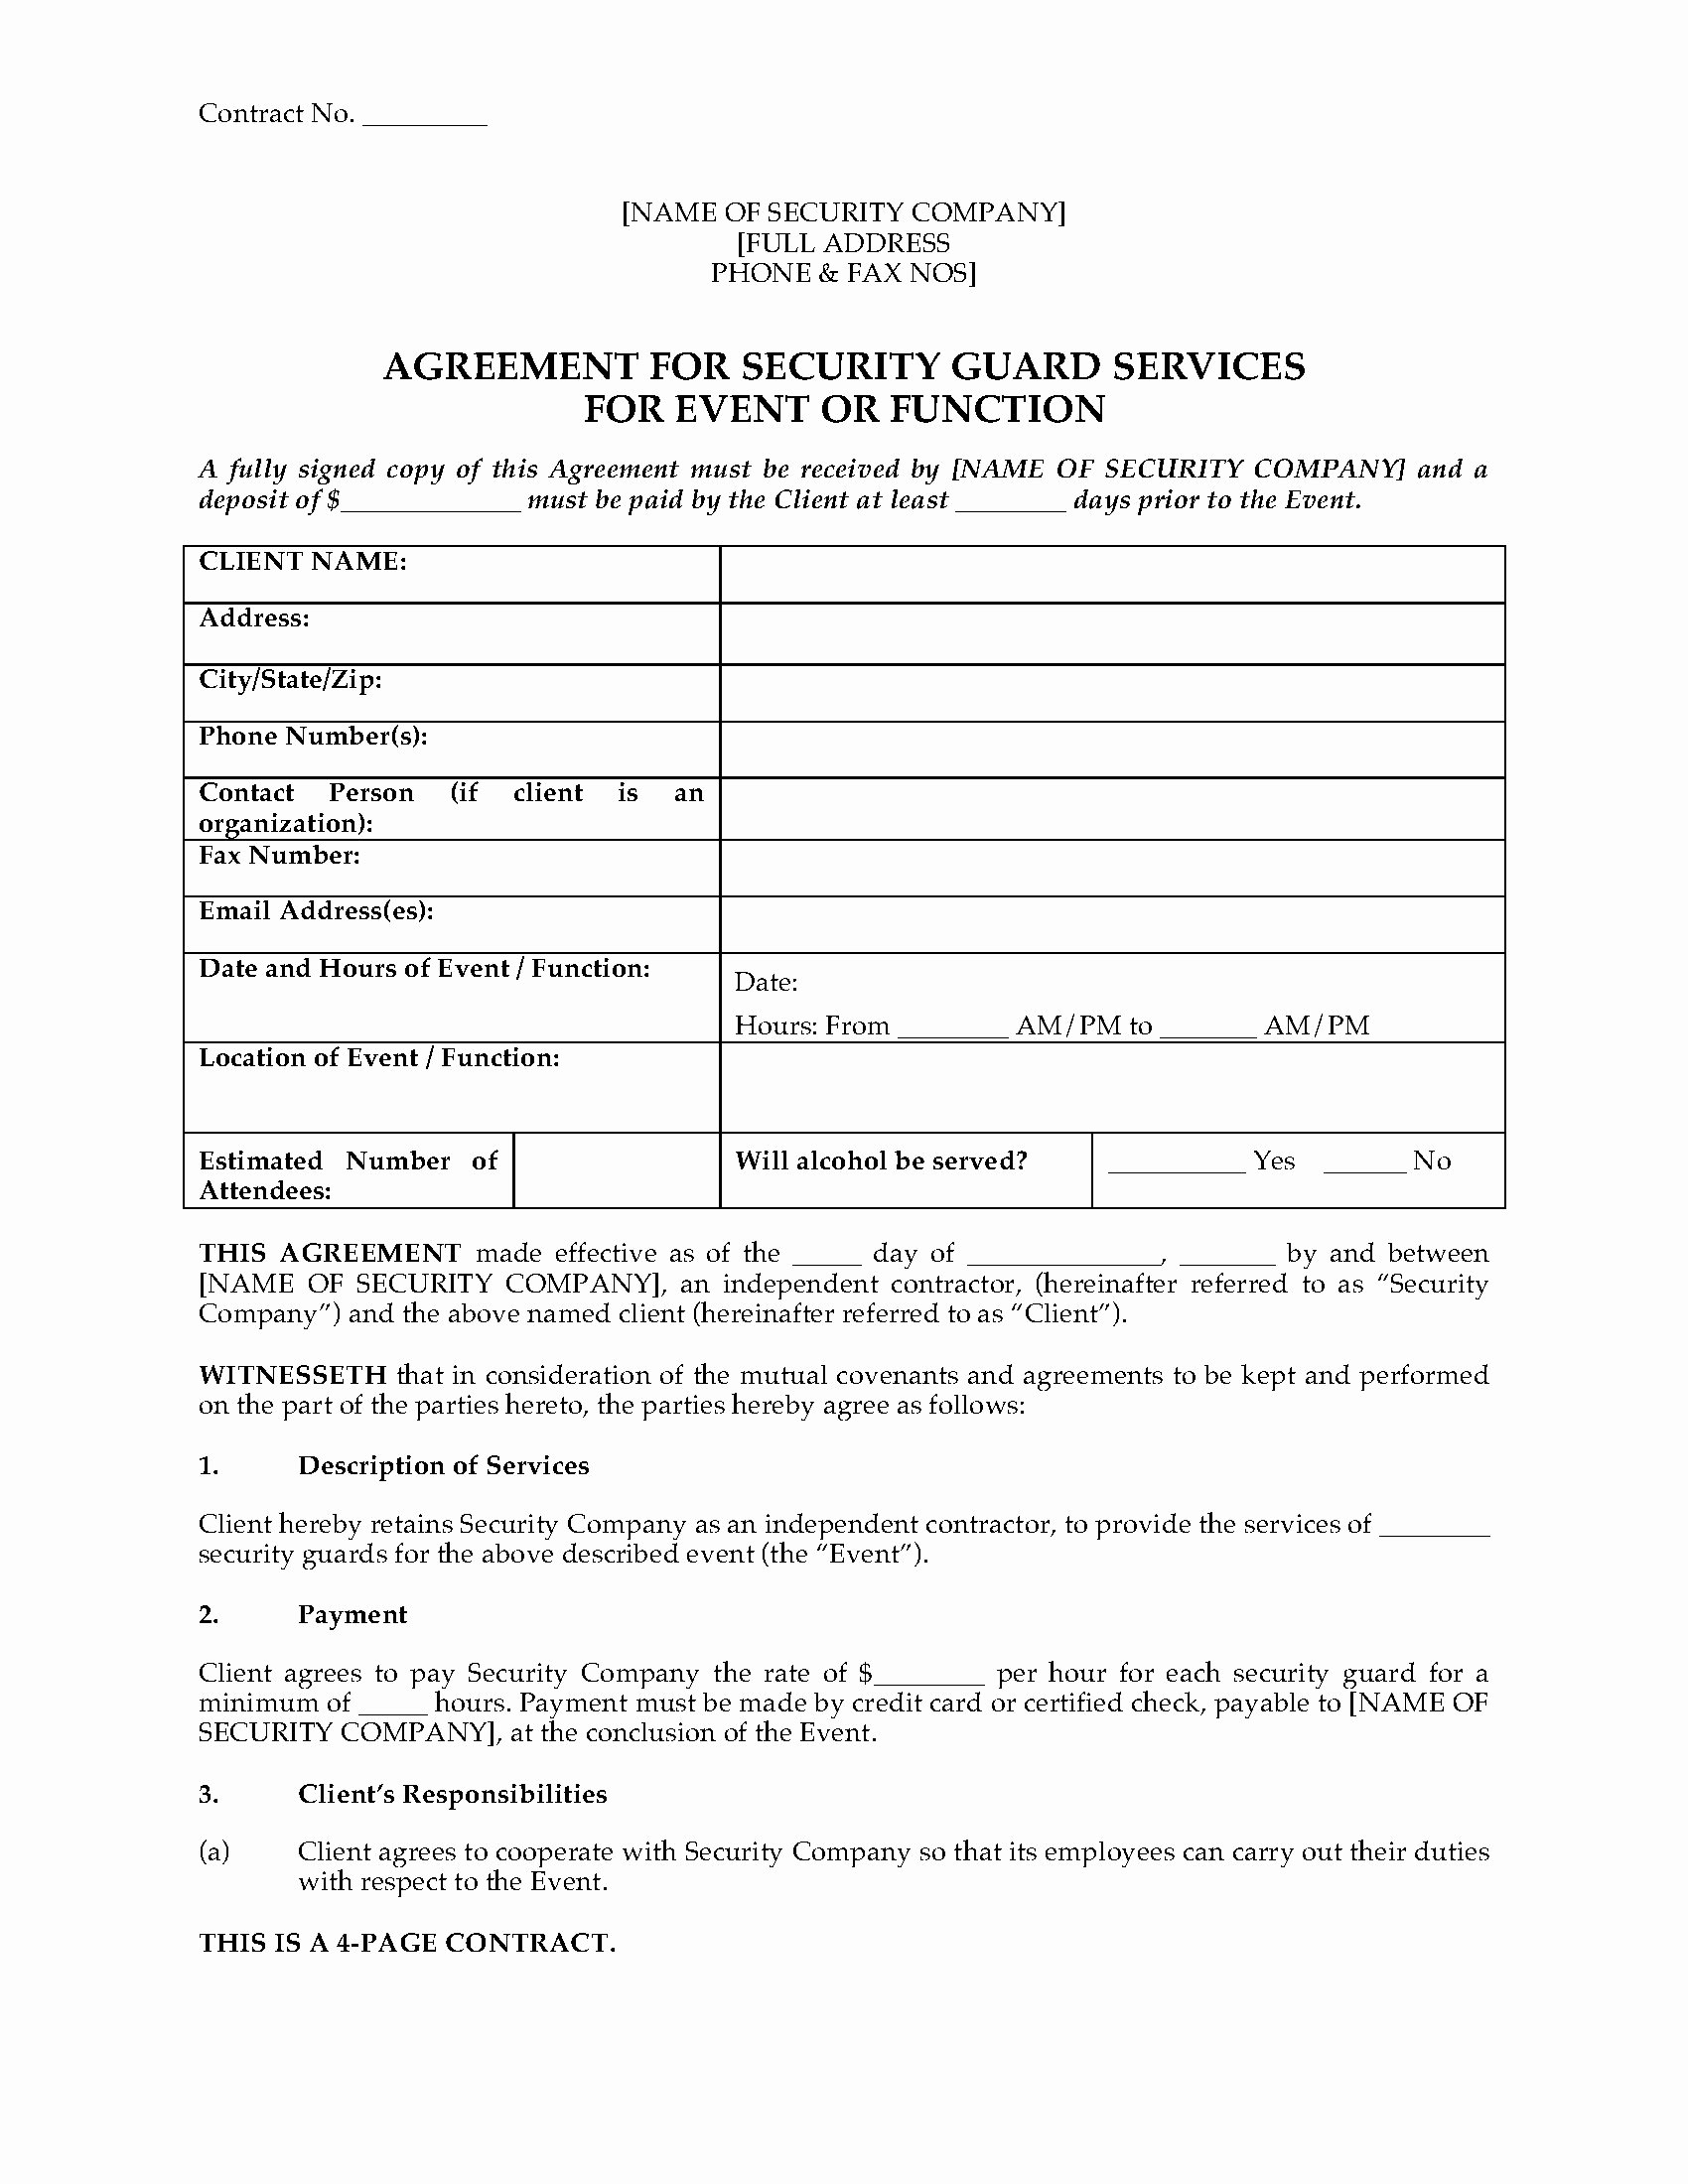 Security Guard Contract Template Inspirational Usa Security Guard Agreement for event or Function